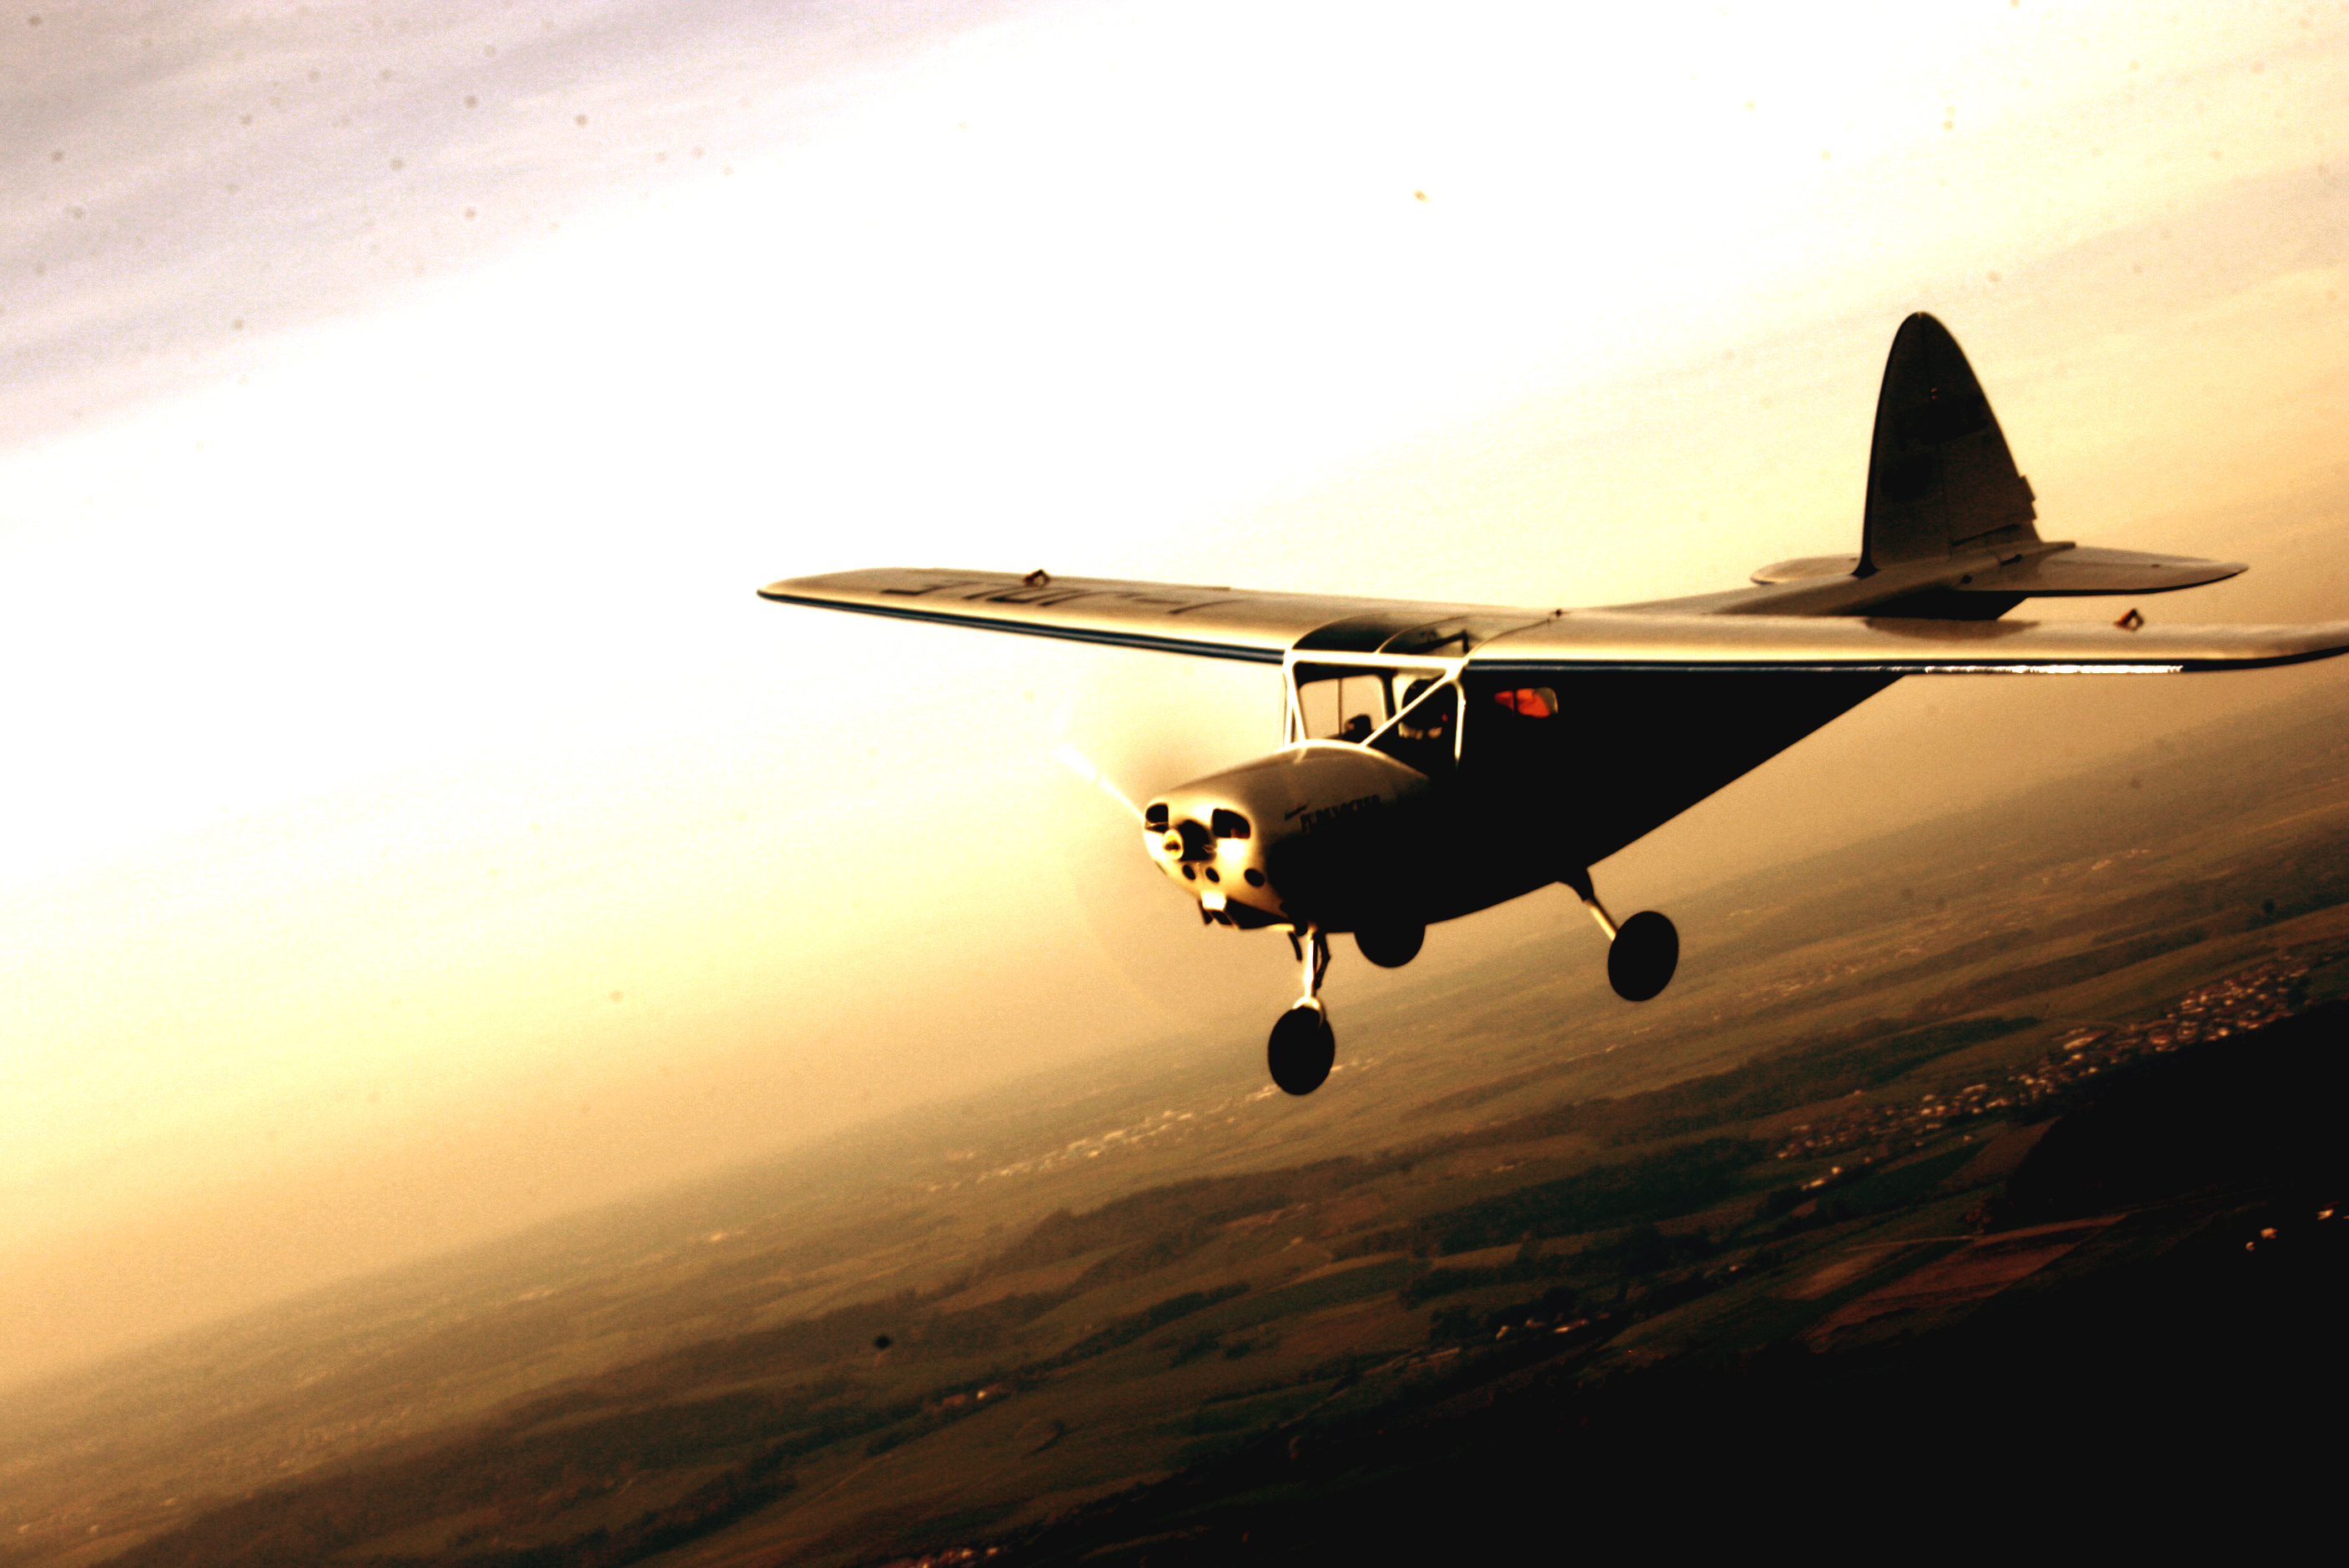 Sunset reflections.Our MB 308 flying over the Donau valley